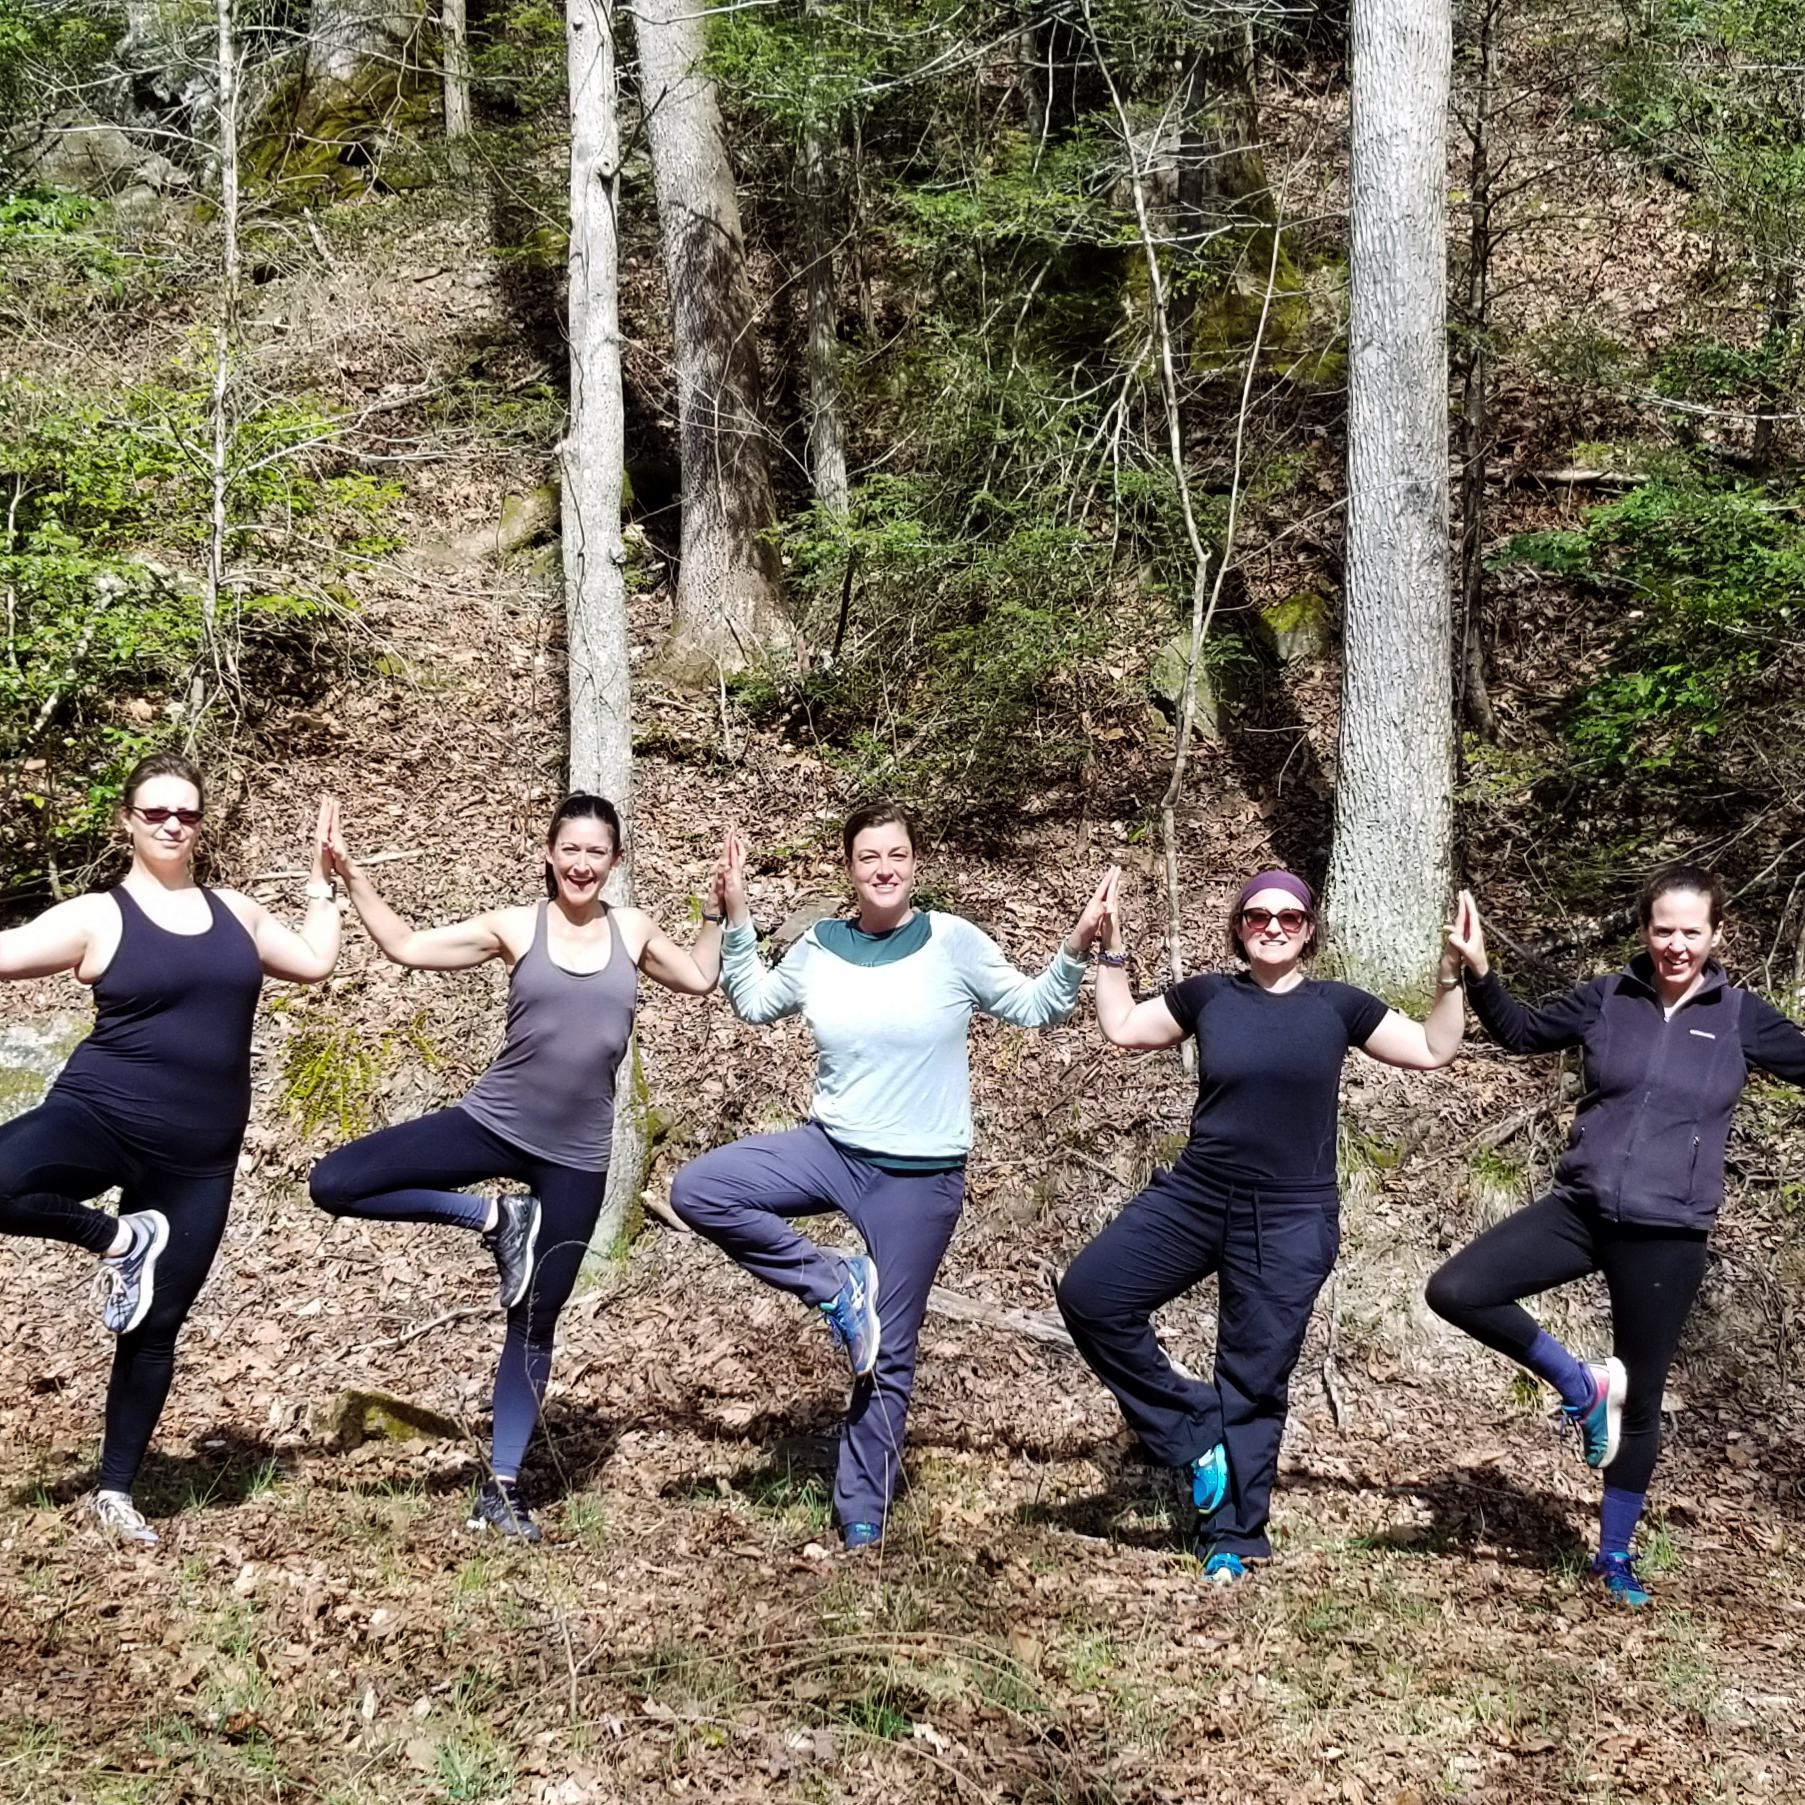 group-vacation-ideas-asheville-nc-yoga-hiking.jpg